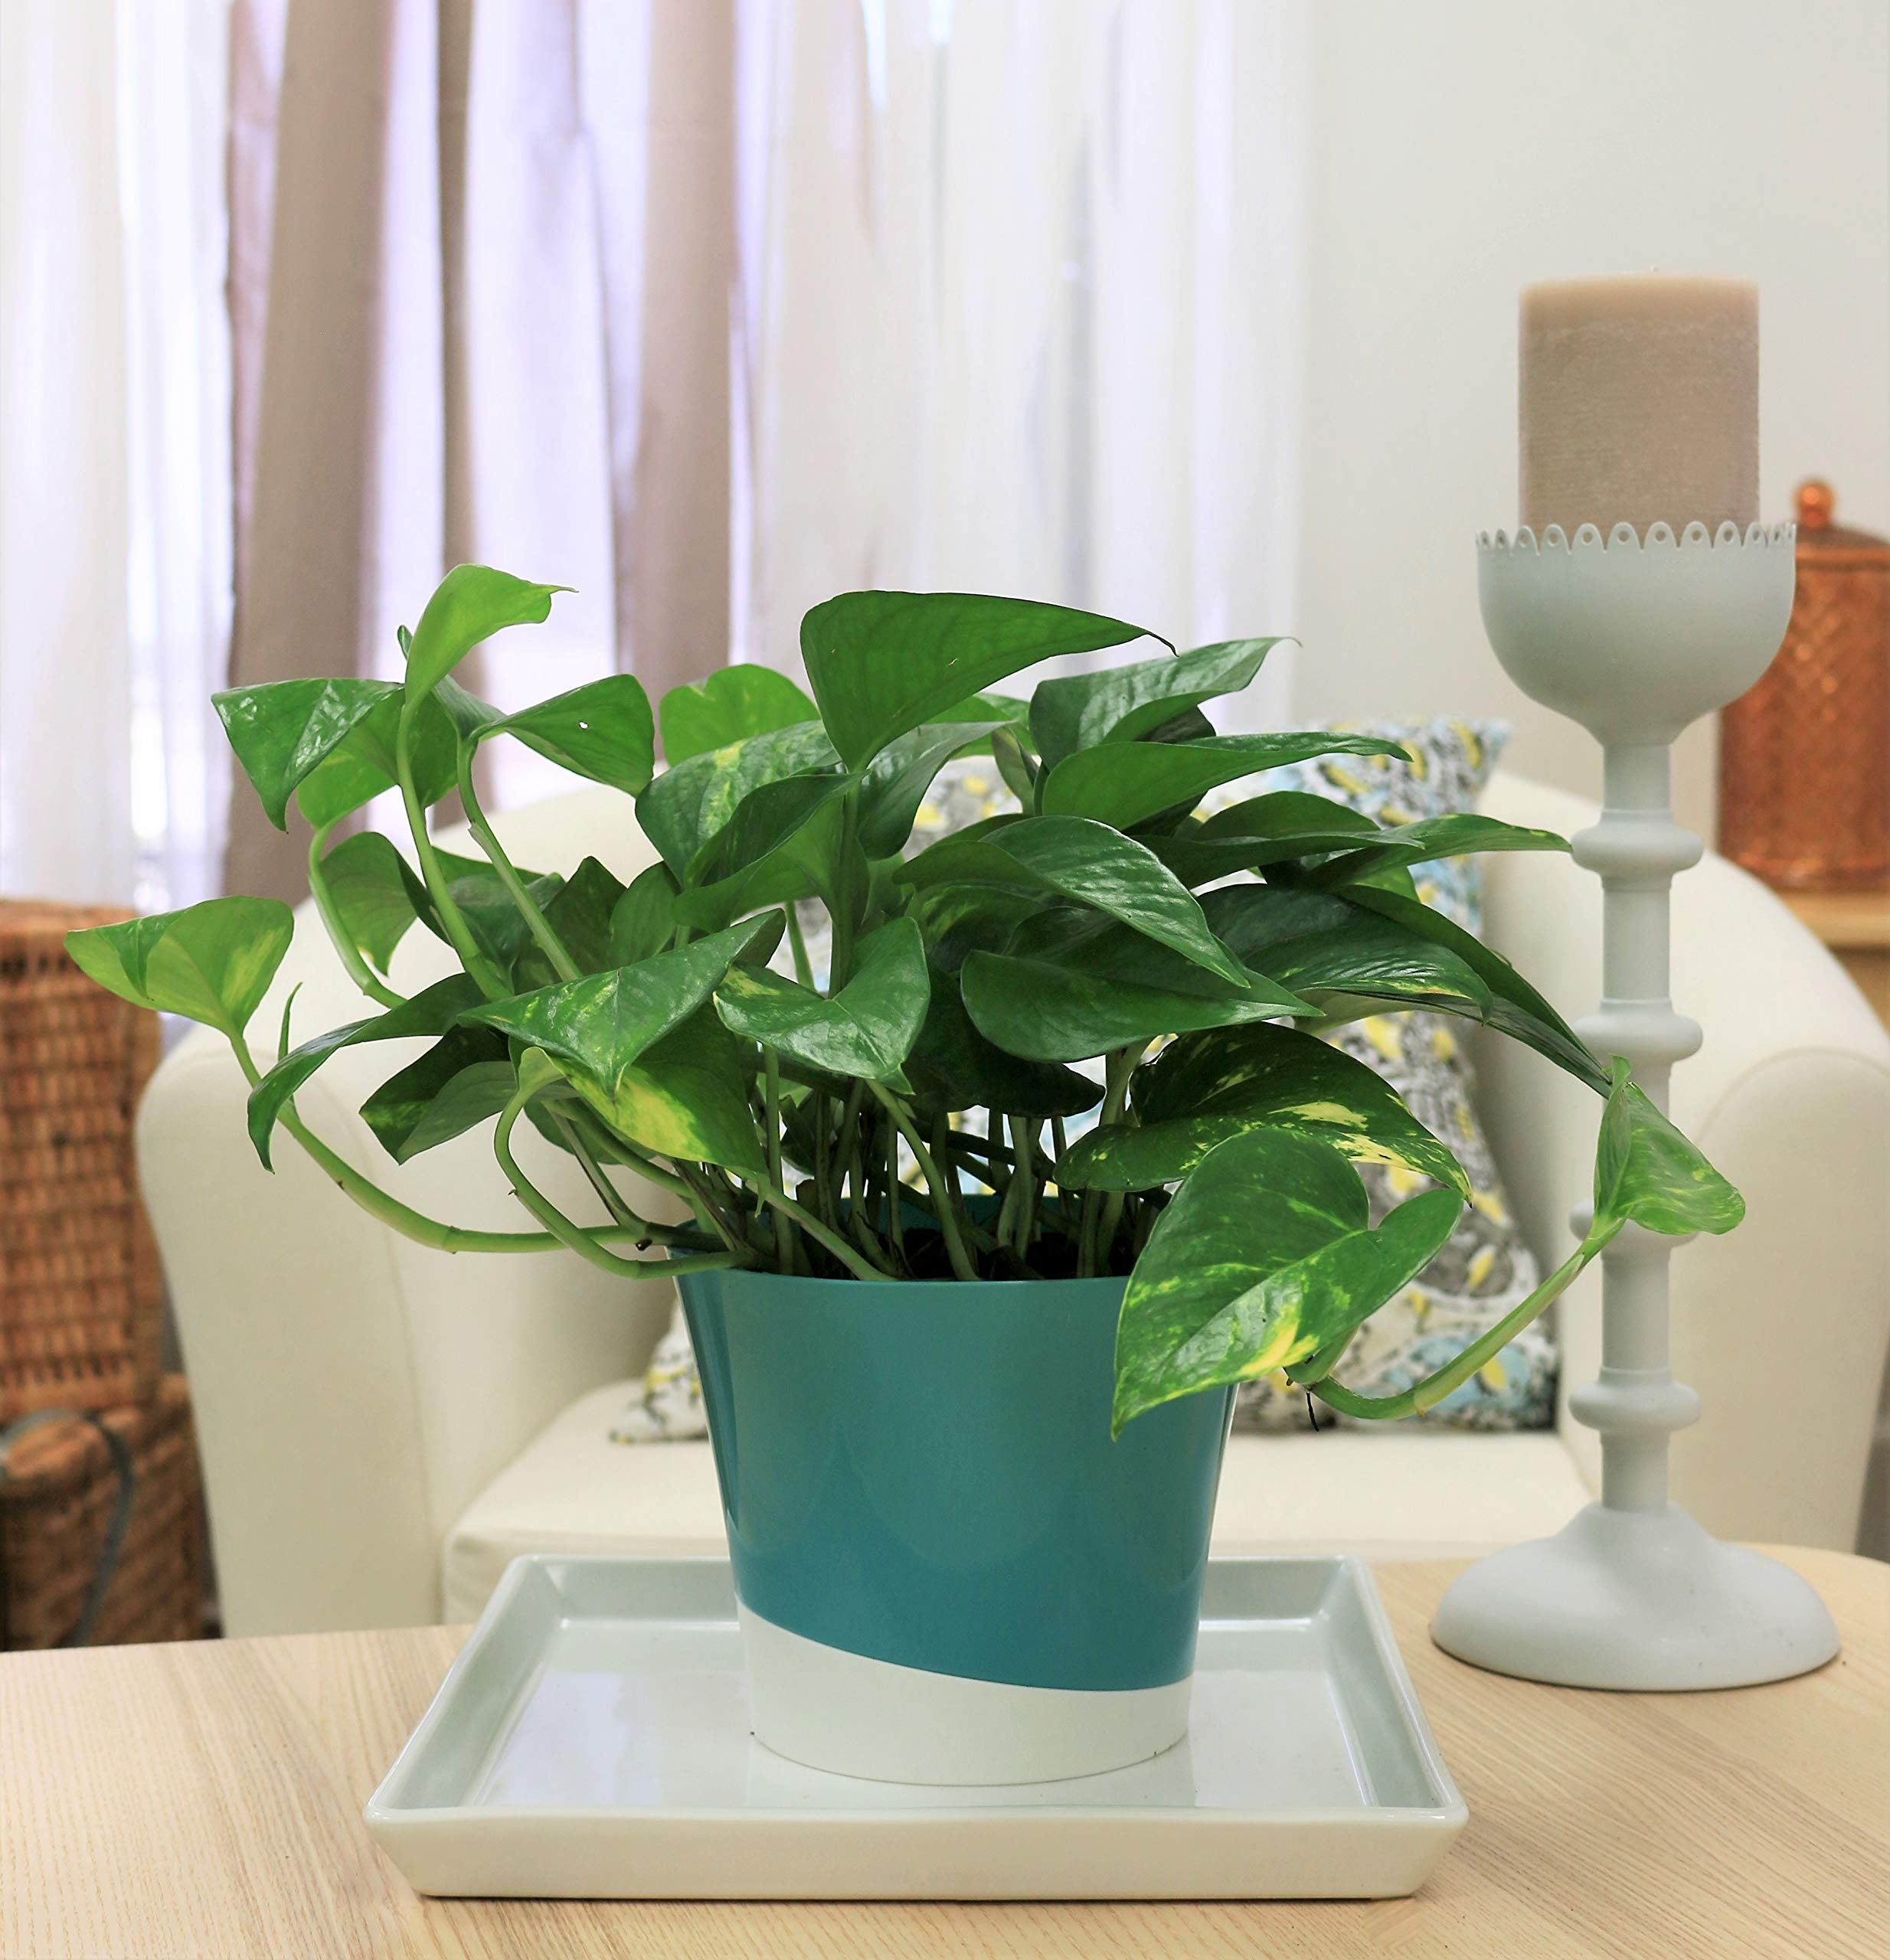 Costa Farms Golden Pothos Devil's Ivy Live Indoor Plant, 6-Inch, Ships in Grower's Pot by Costa Farms (Image #4)